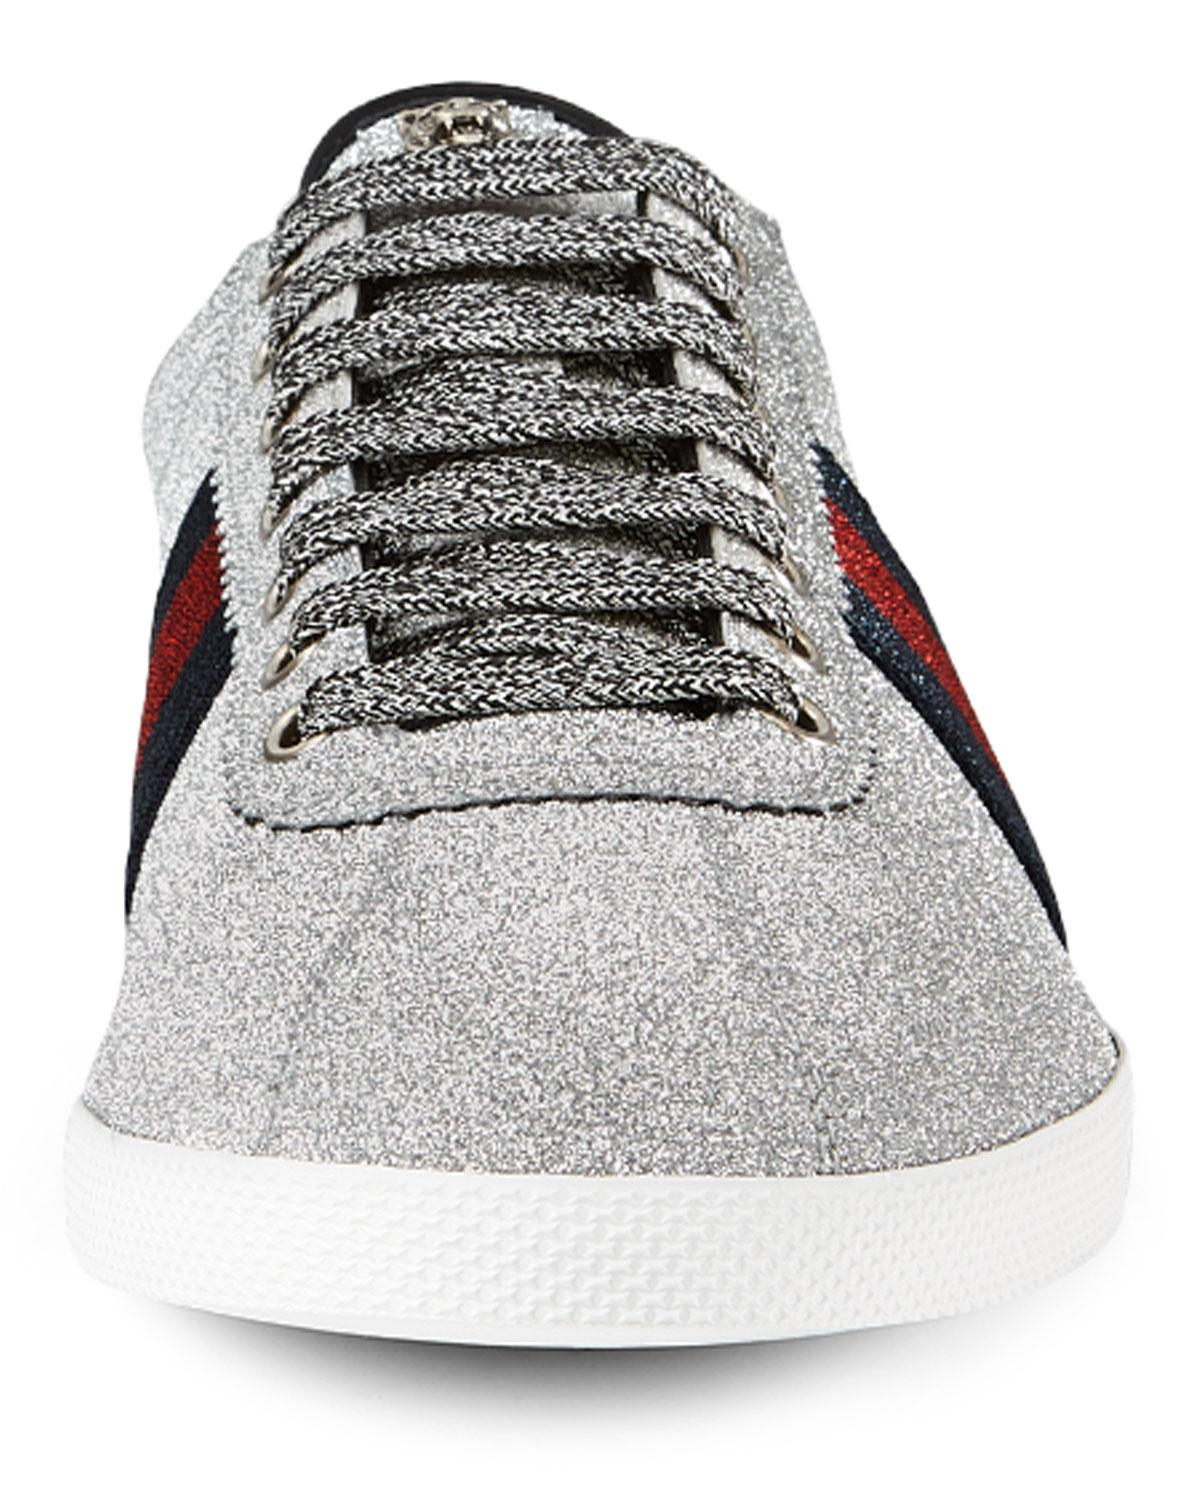 0d2ad6a95d0e2 Lyst - Gucci Men s Bambi Web Low-top Sneakers With Stud Detail for Men